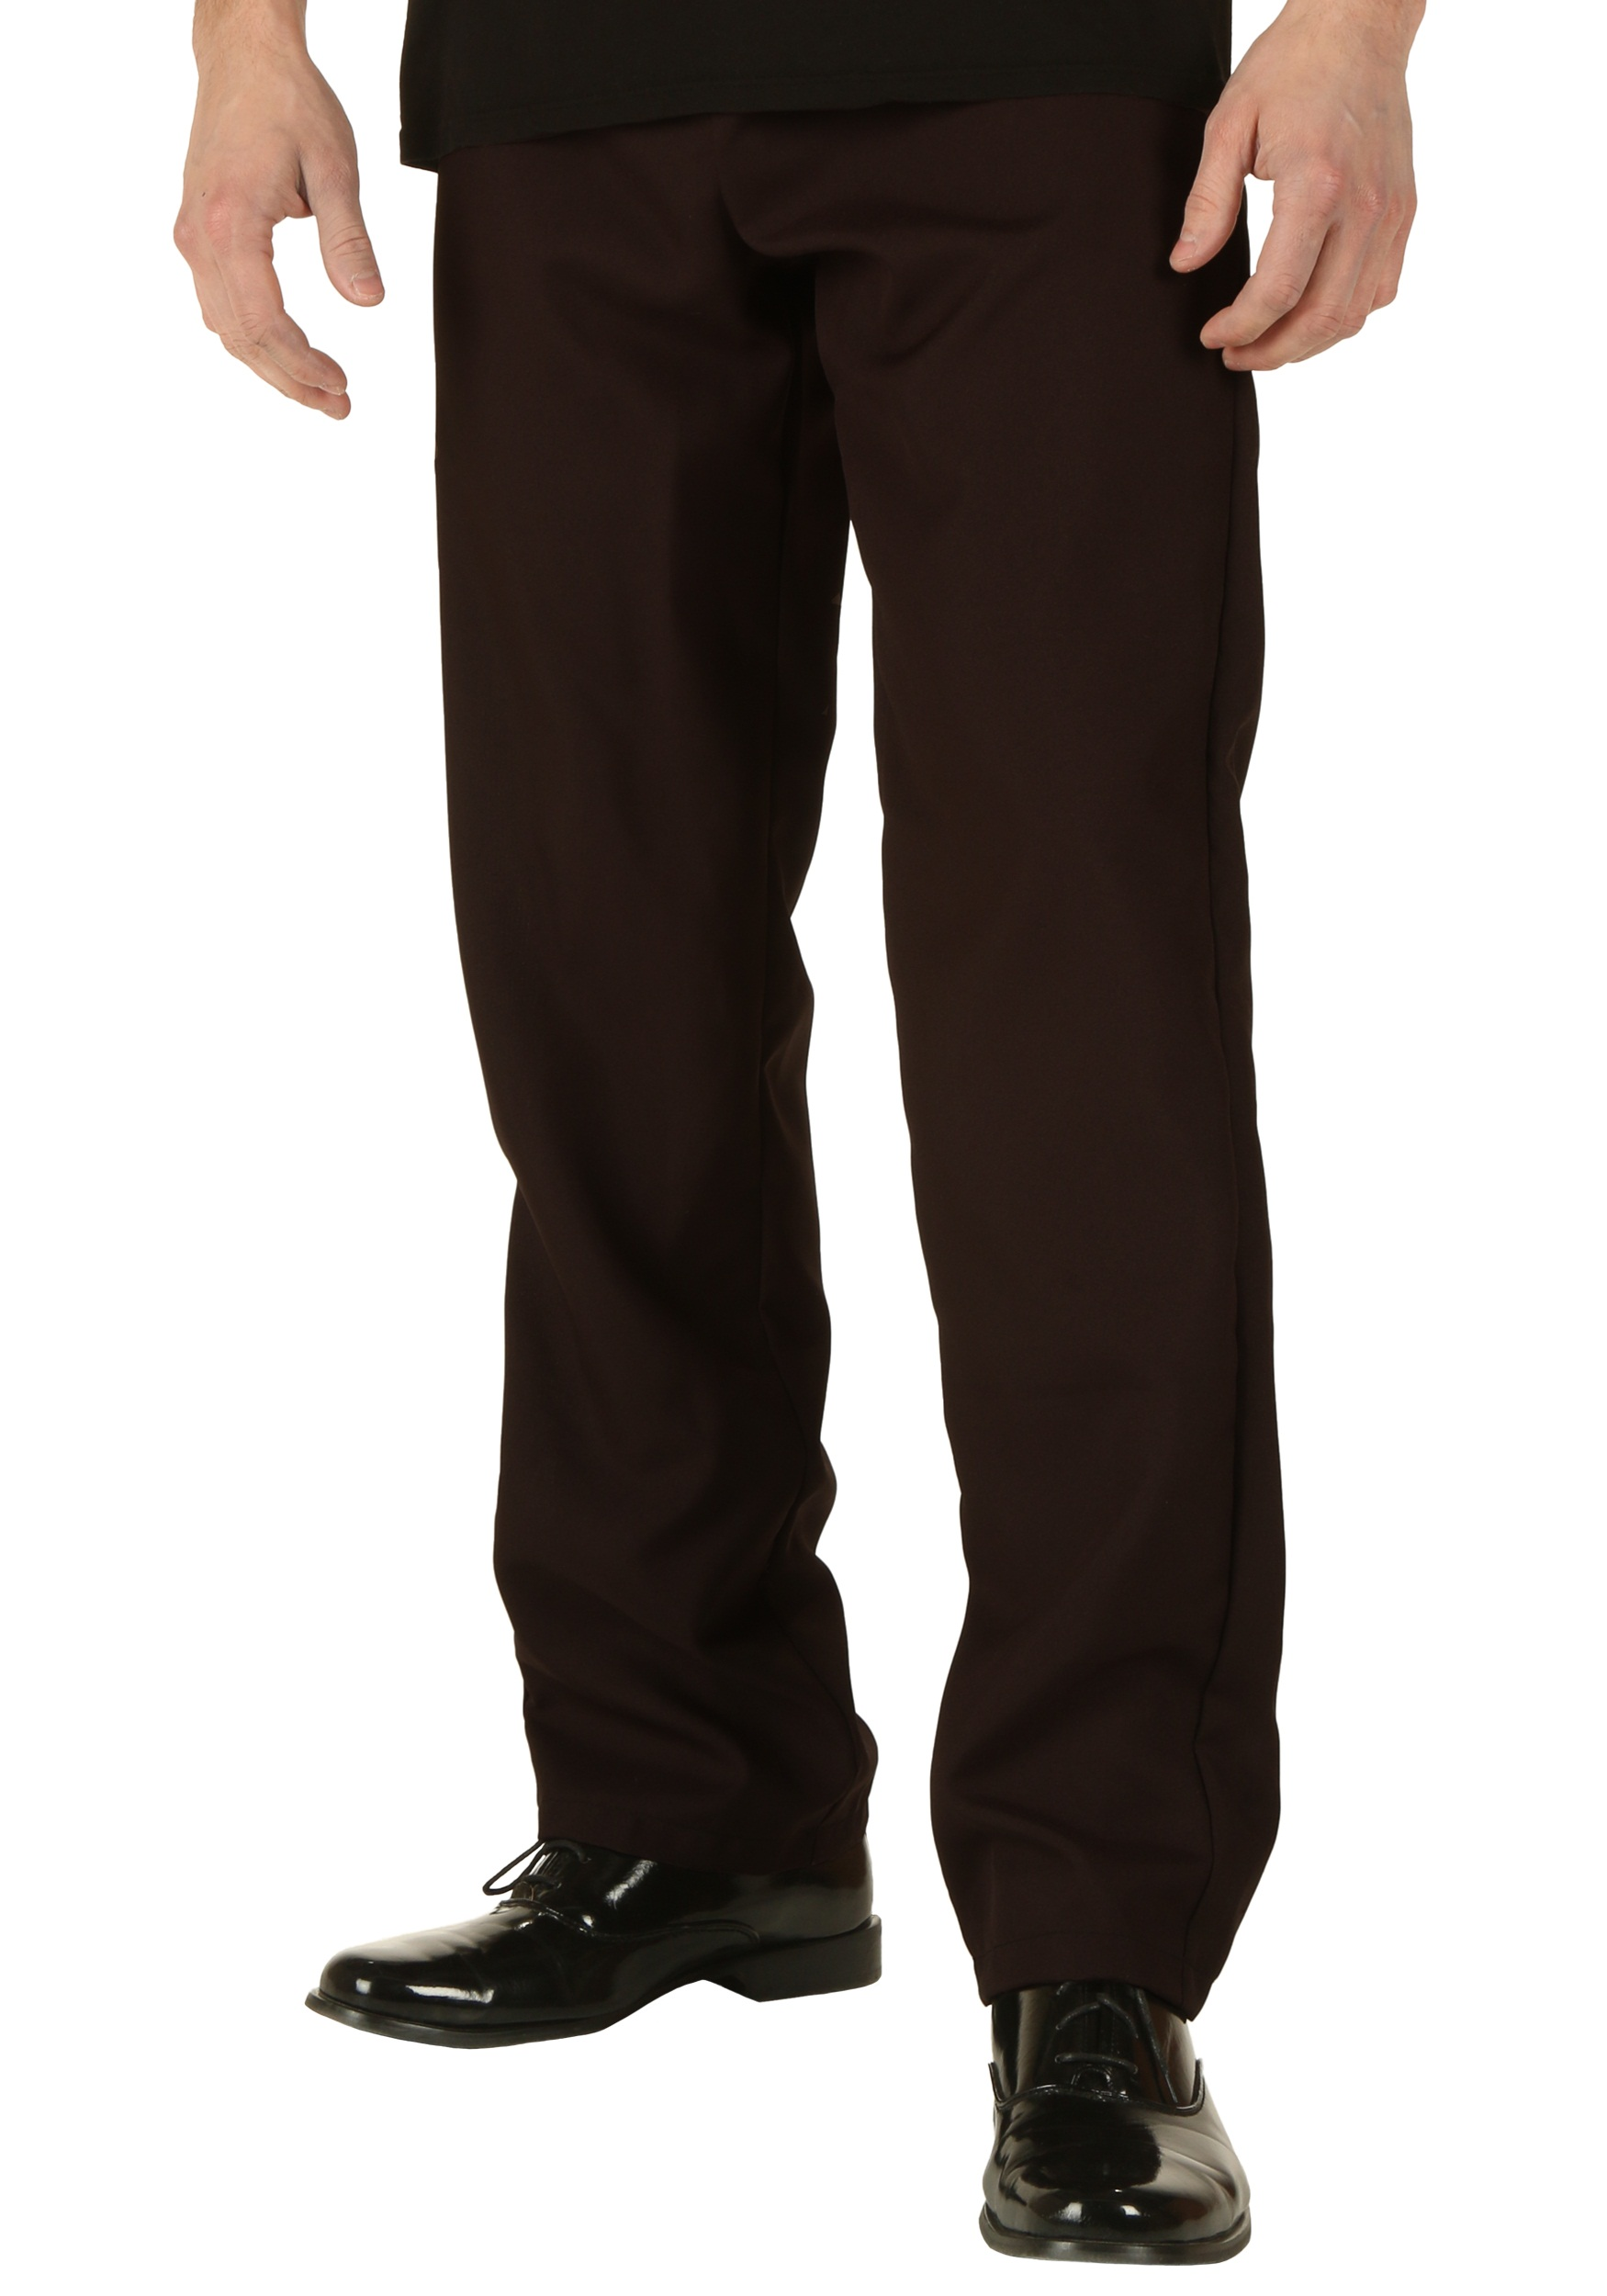 Plus Size Brown Pants